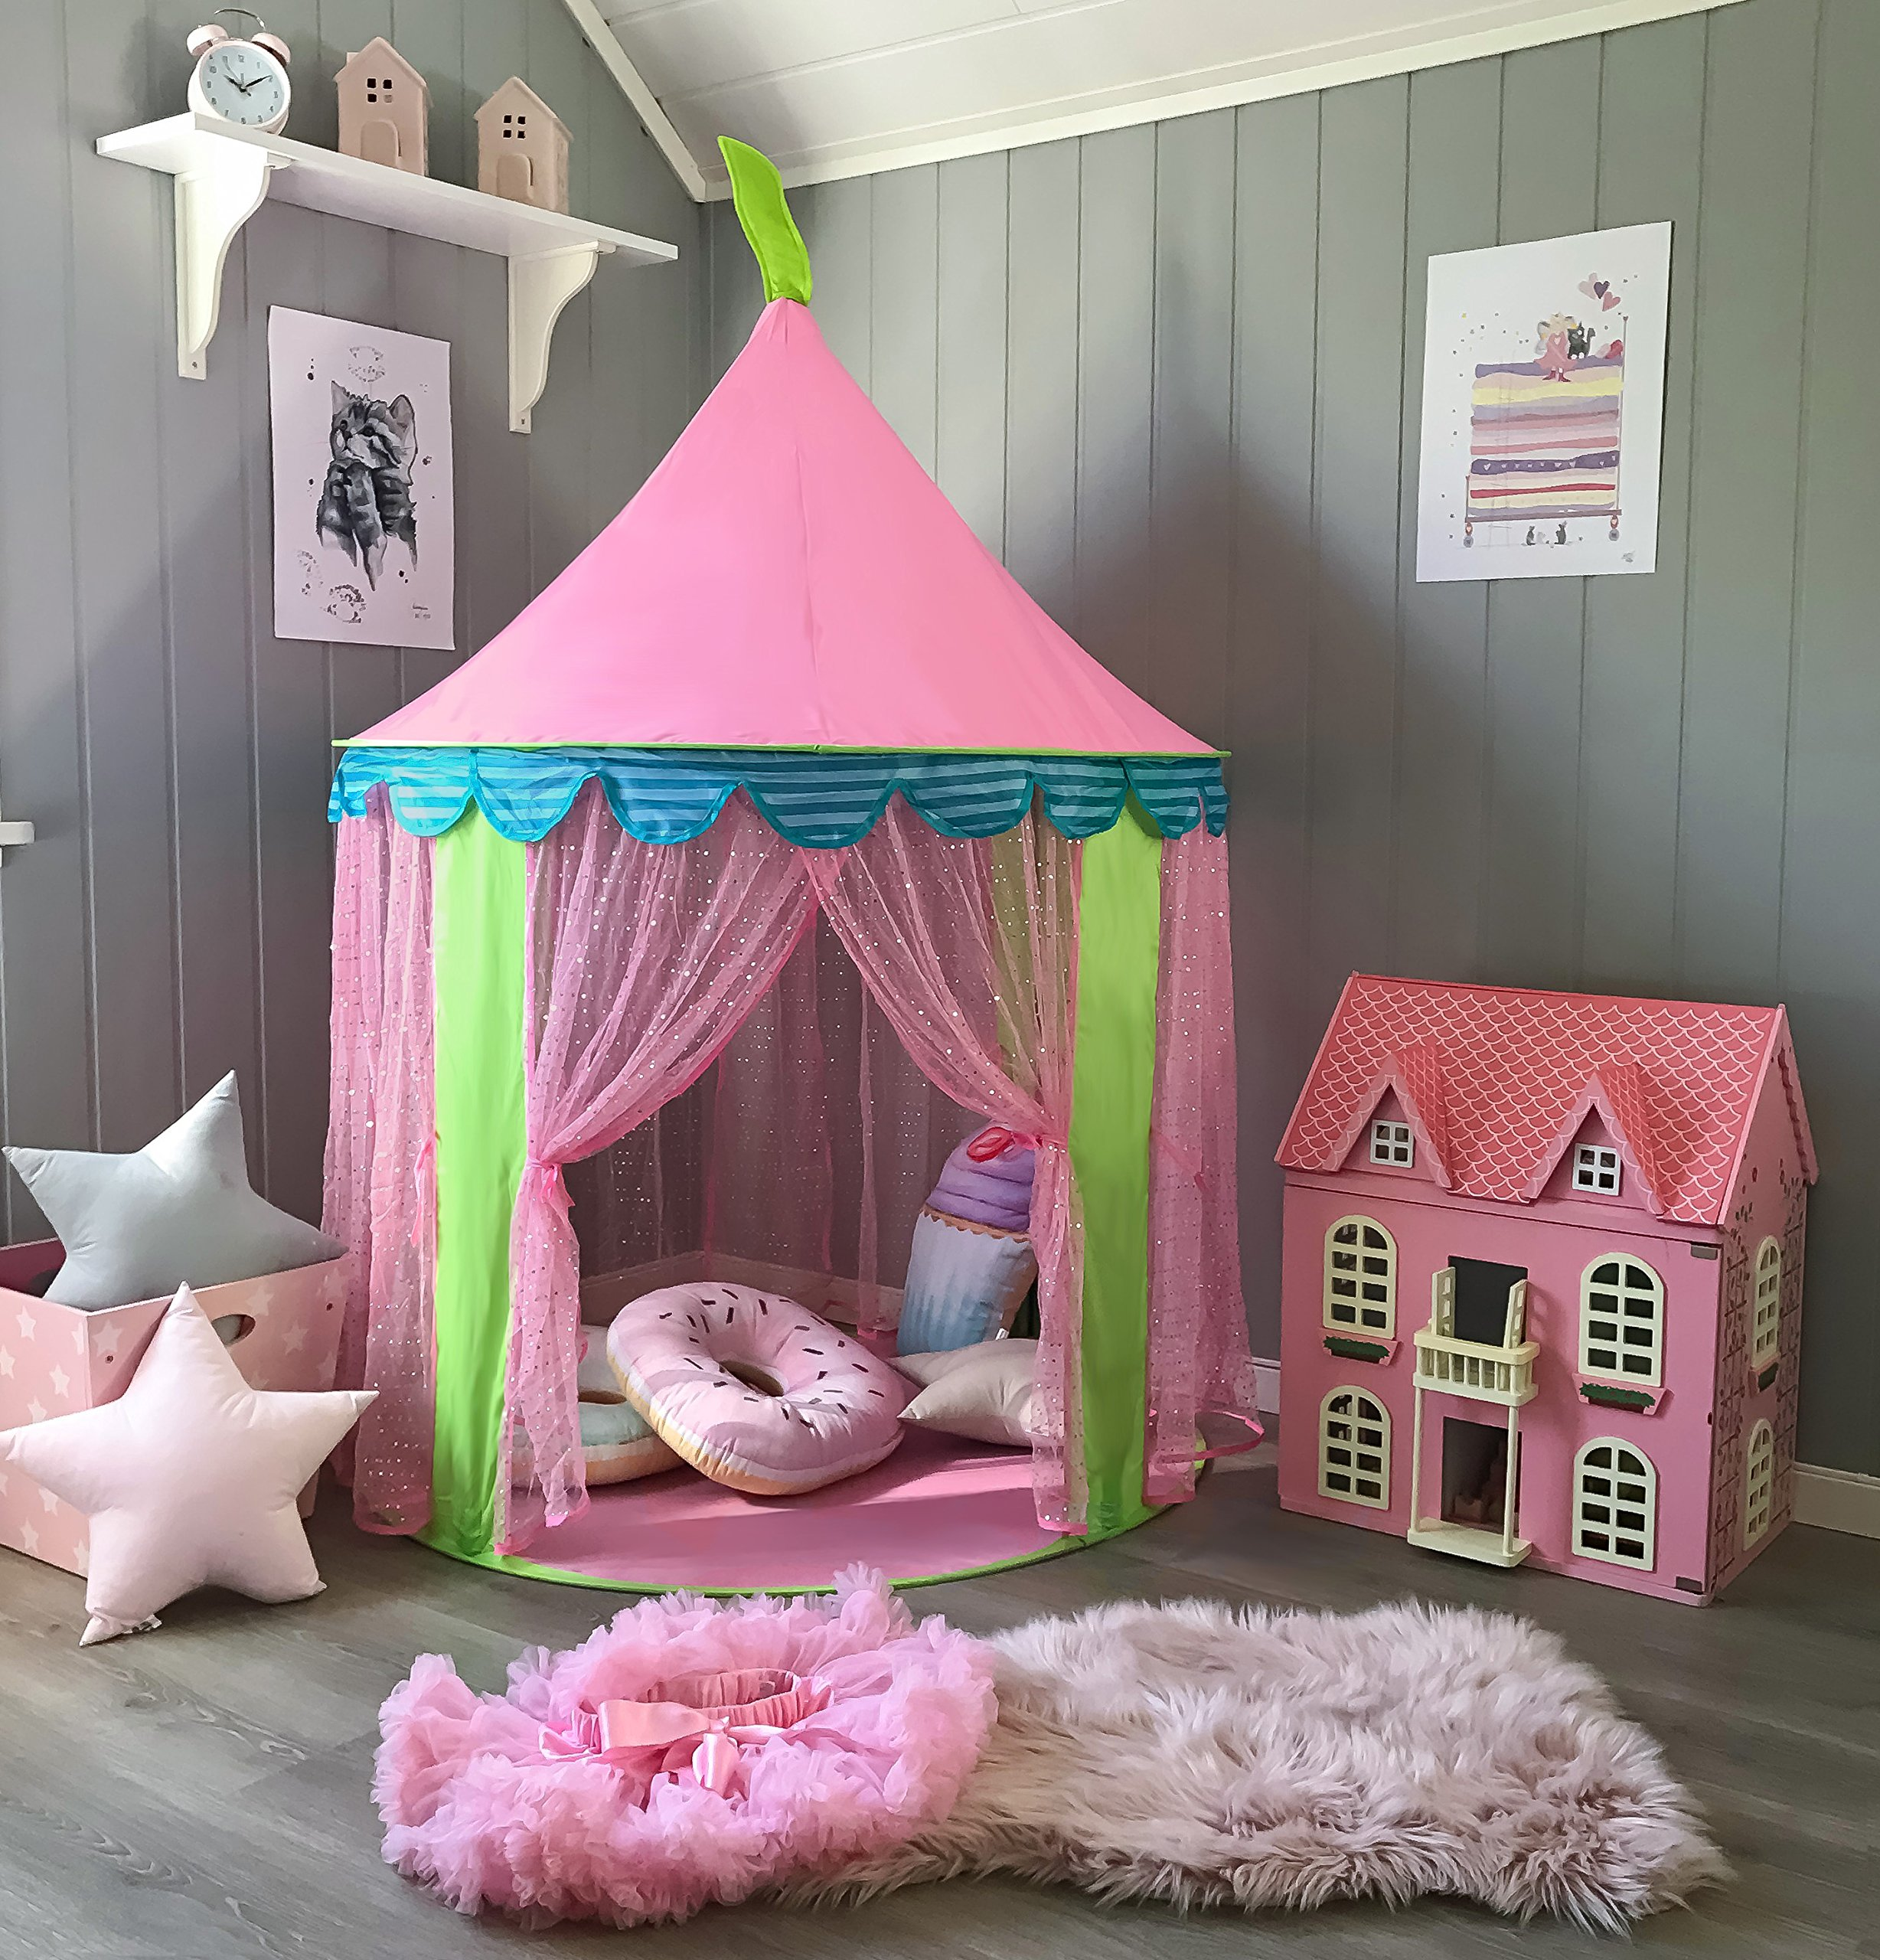 Princess Castle Play Tent for Girls Indoor Outdoor Use By Tiny Land